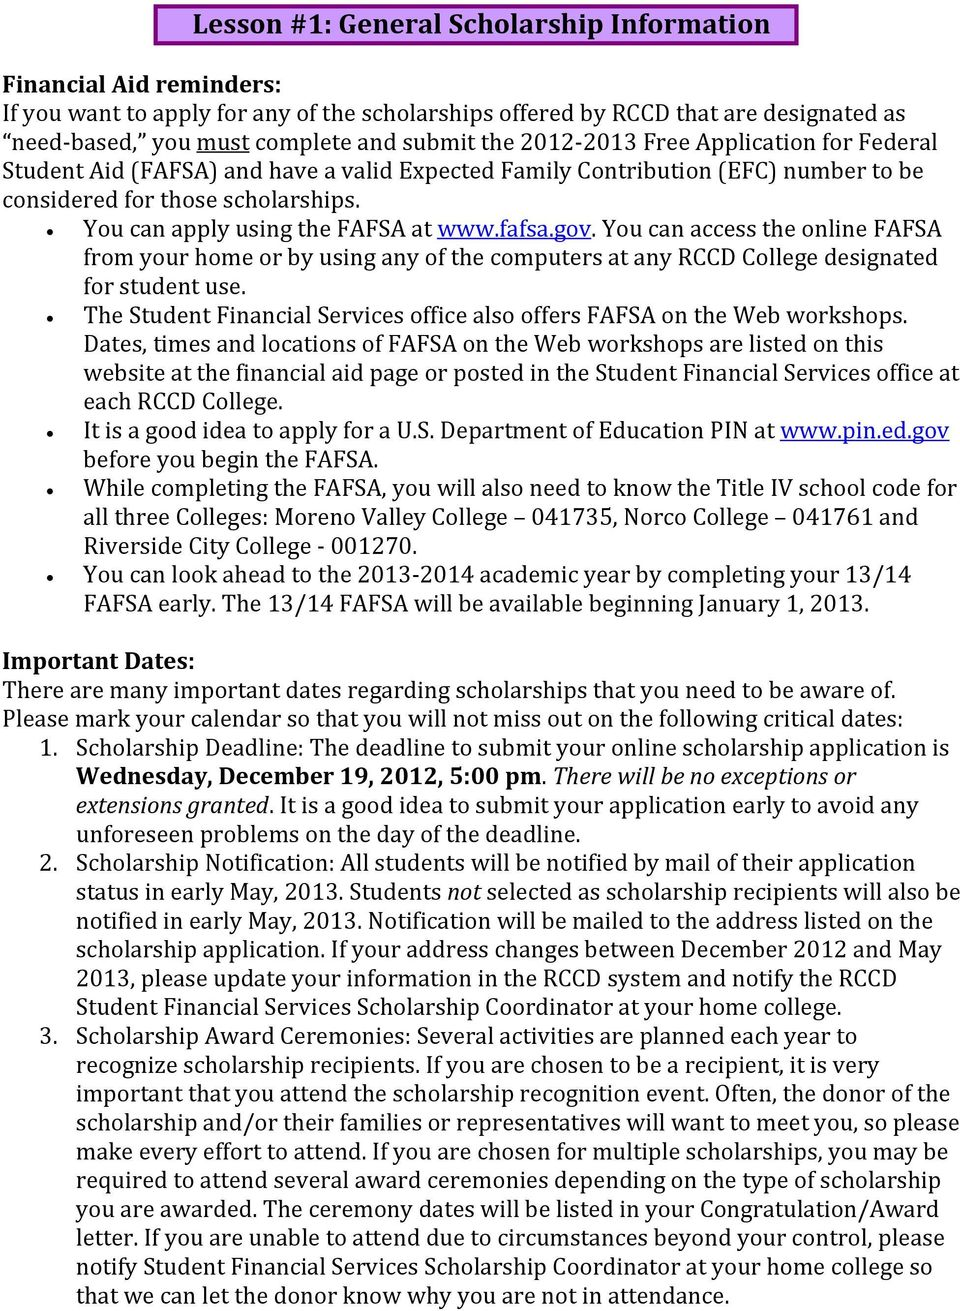 fafsa.gov. You can access the online FAFSA from your home or by using any of the computers at any RCCD College designated for student use.